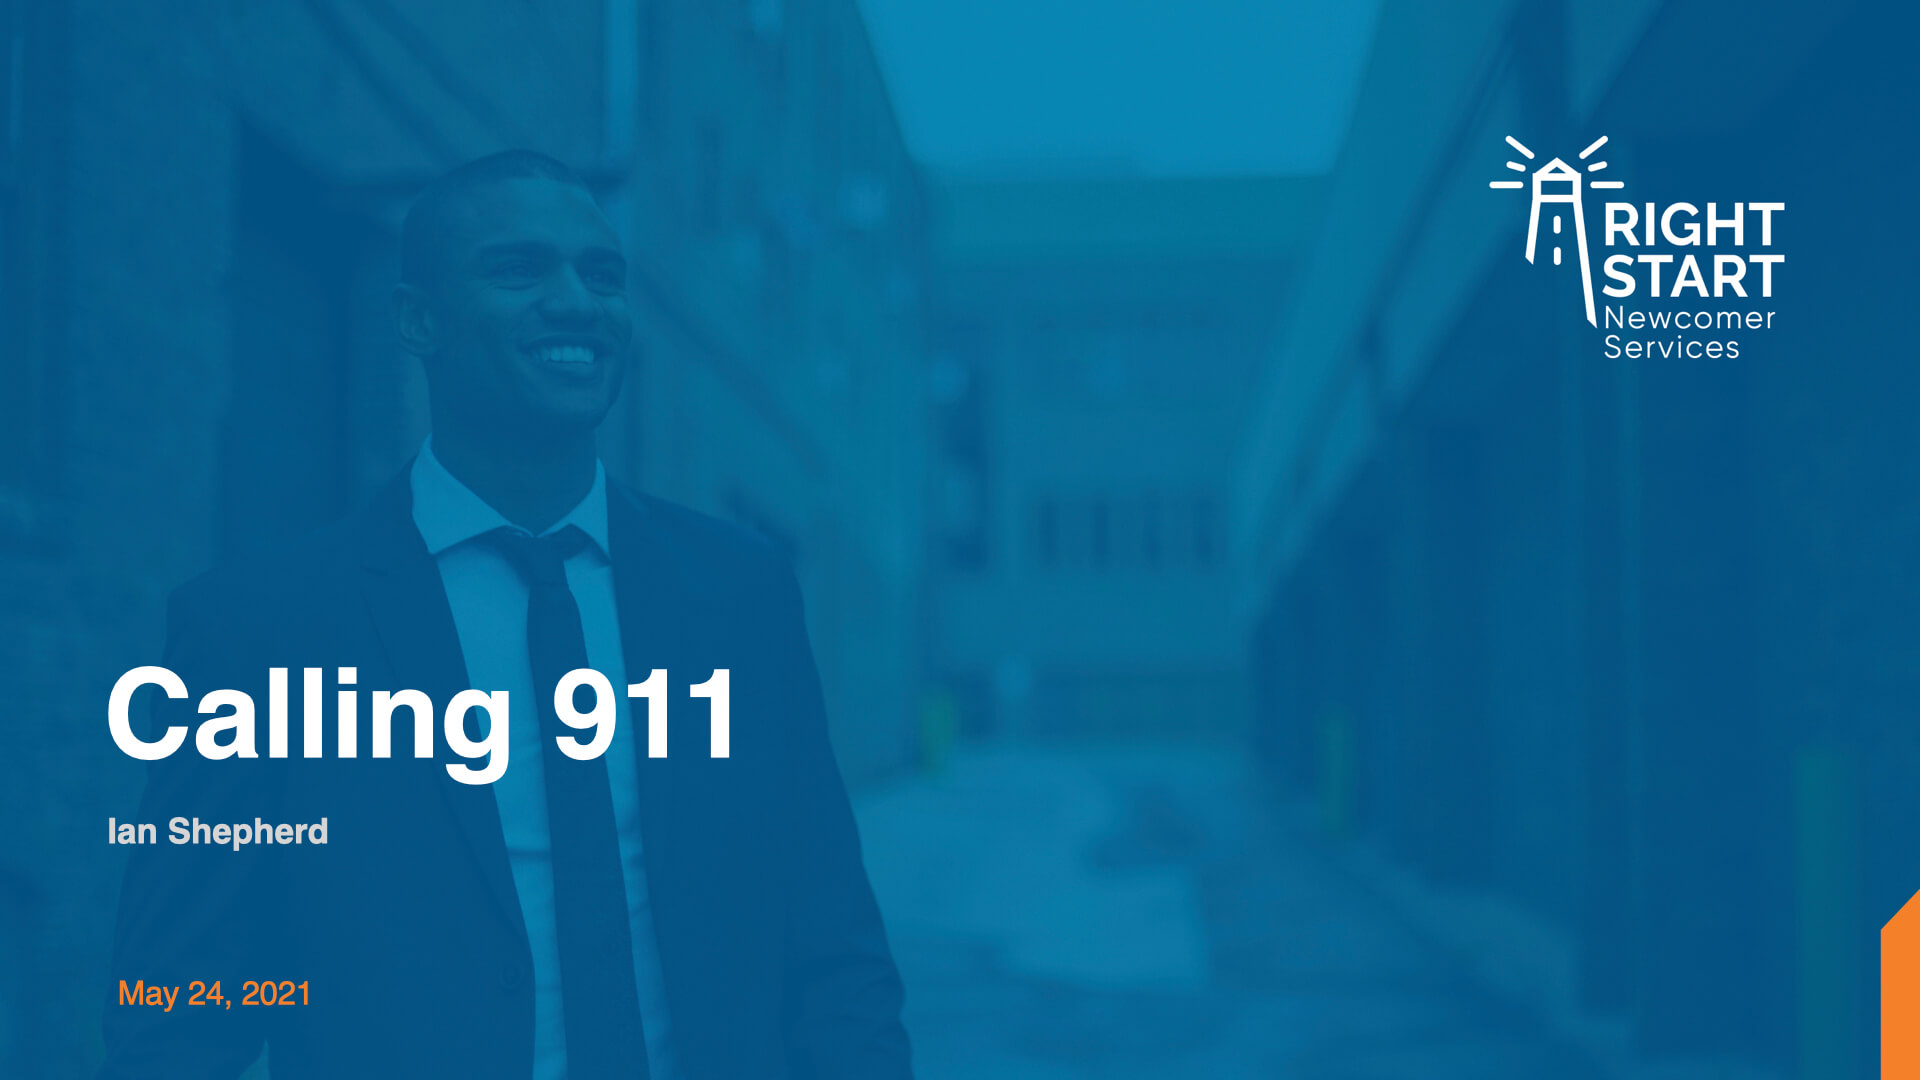 Learn Canadian English - Calling 911 slides